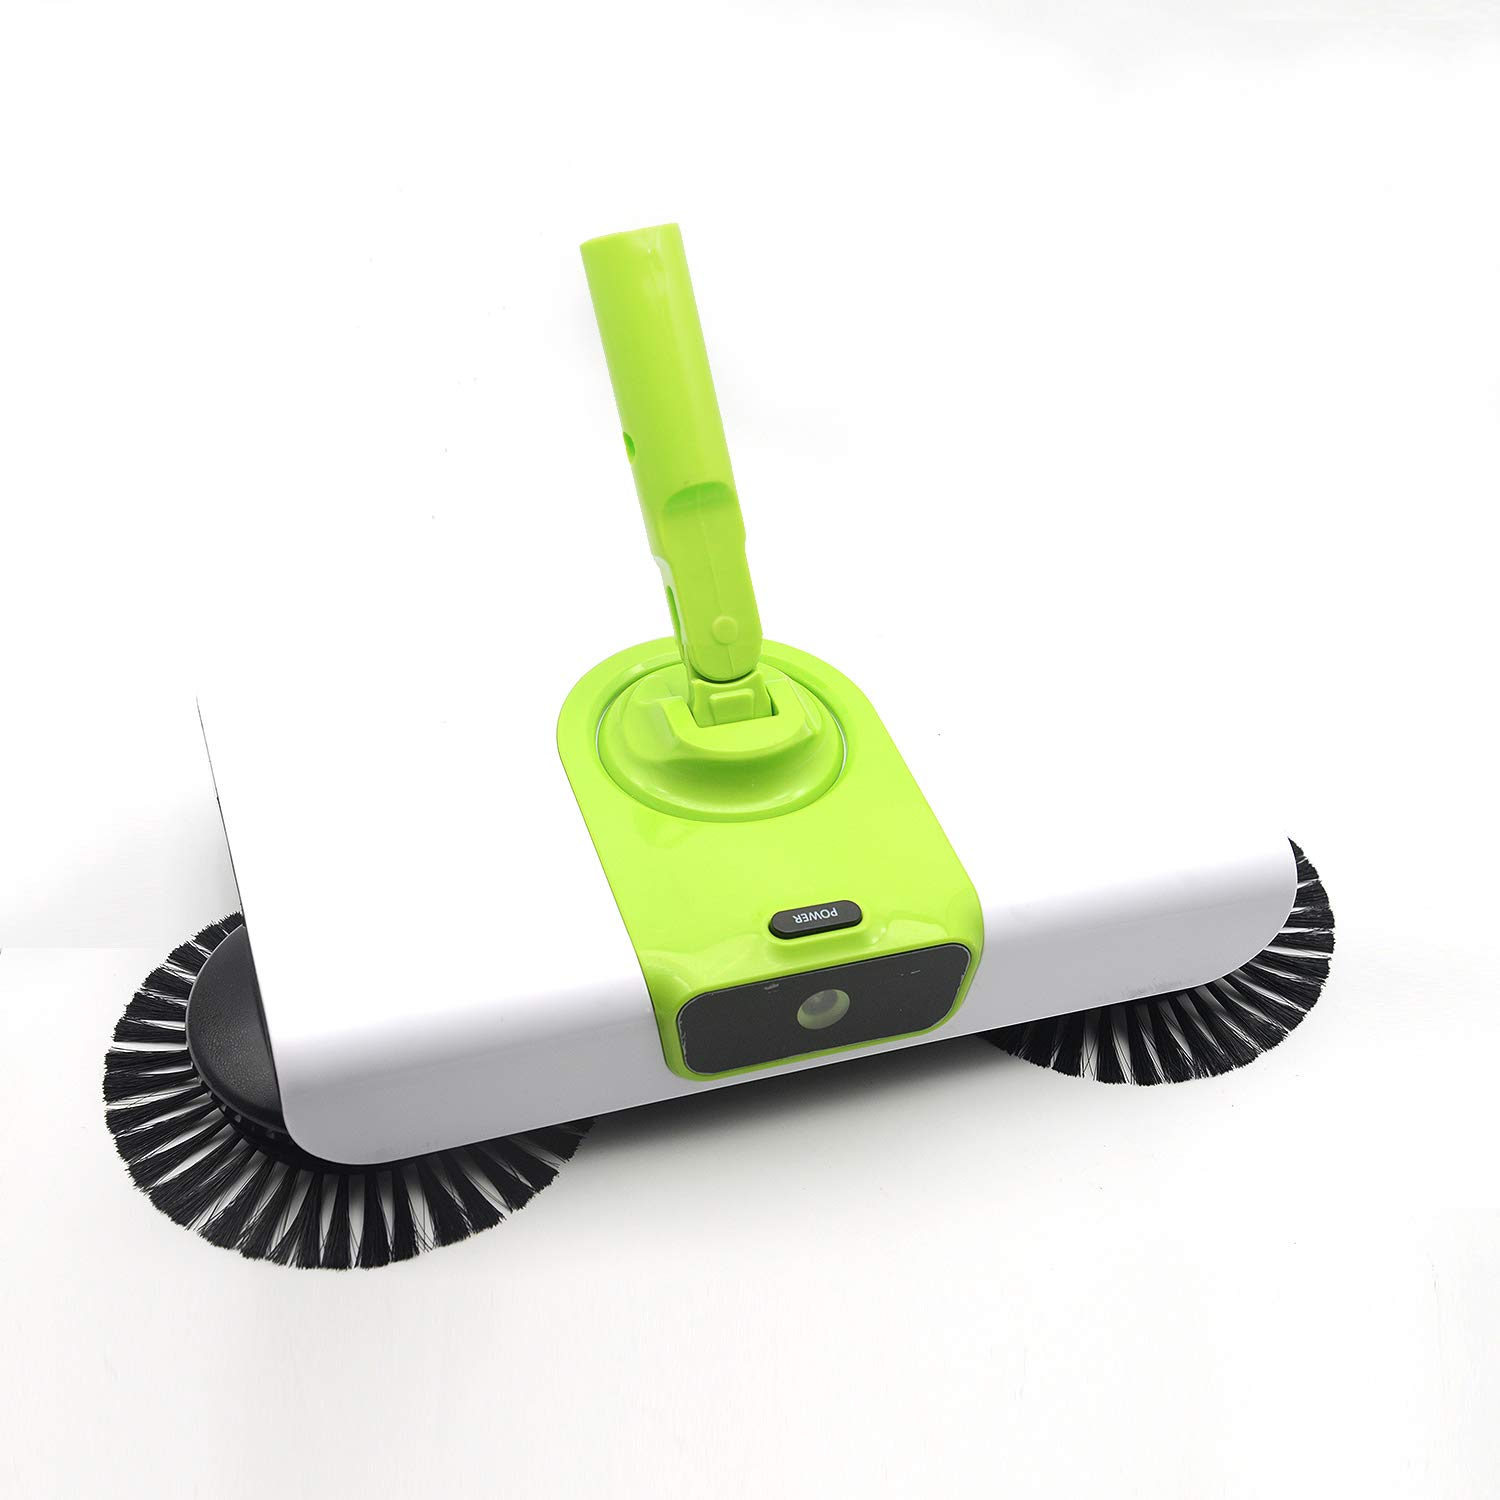 EZ SPARES Quiet Floor&Carpet Sweeper,Dry&Wet with Mops, Non Electric Multi-Surface Cleaner,Strong Cleaning Power,Great for House,Office,Kitchen